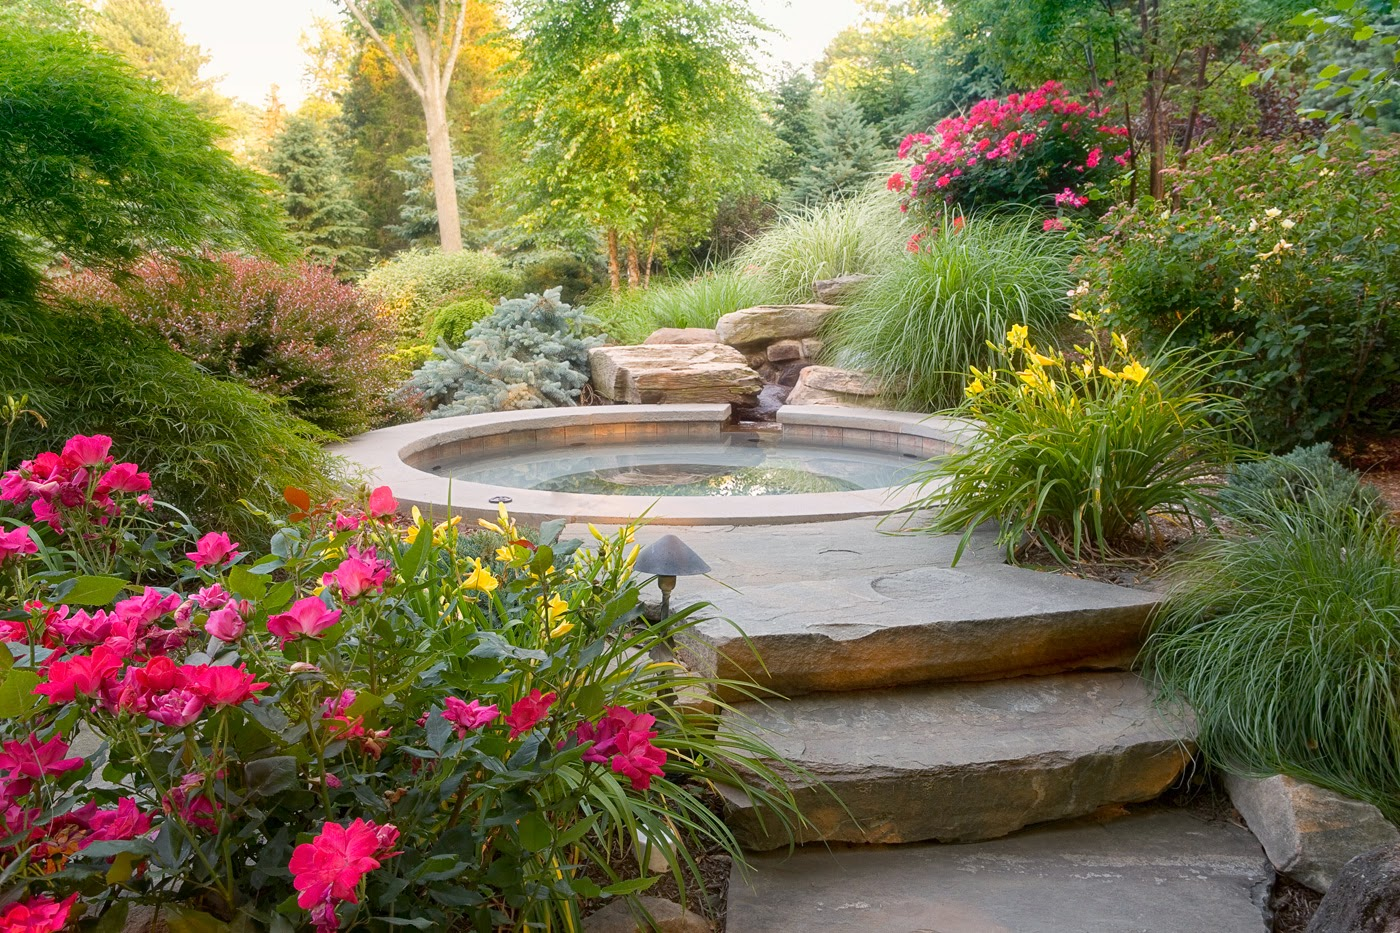 Landscape And Garden Ideas Morreraler August 2014